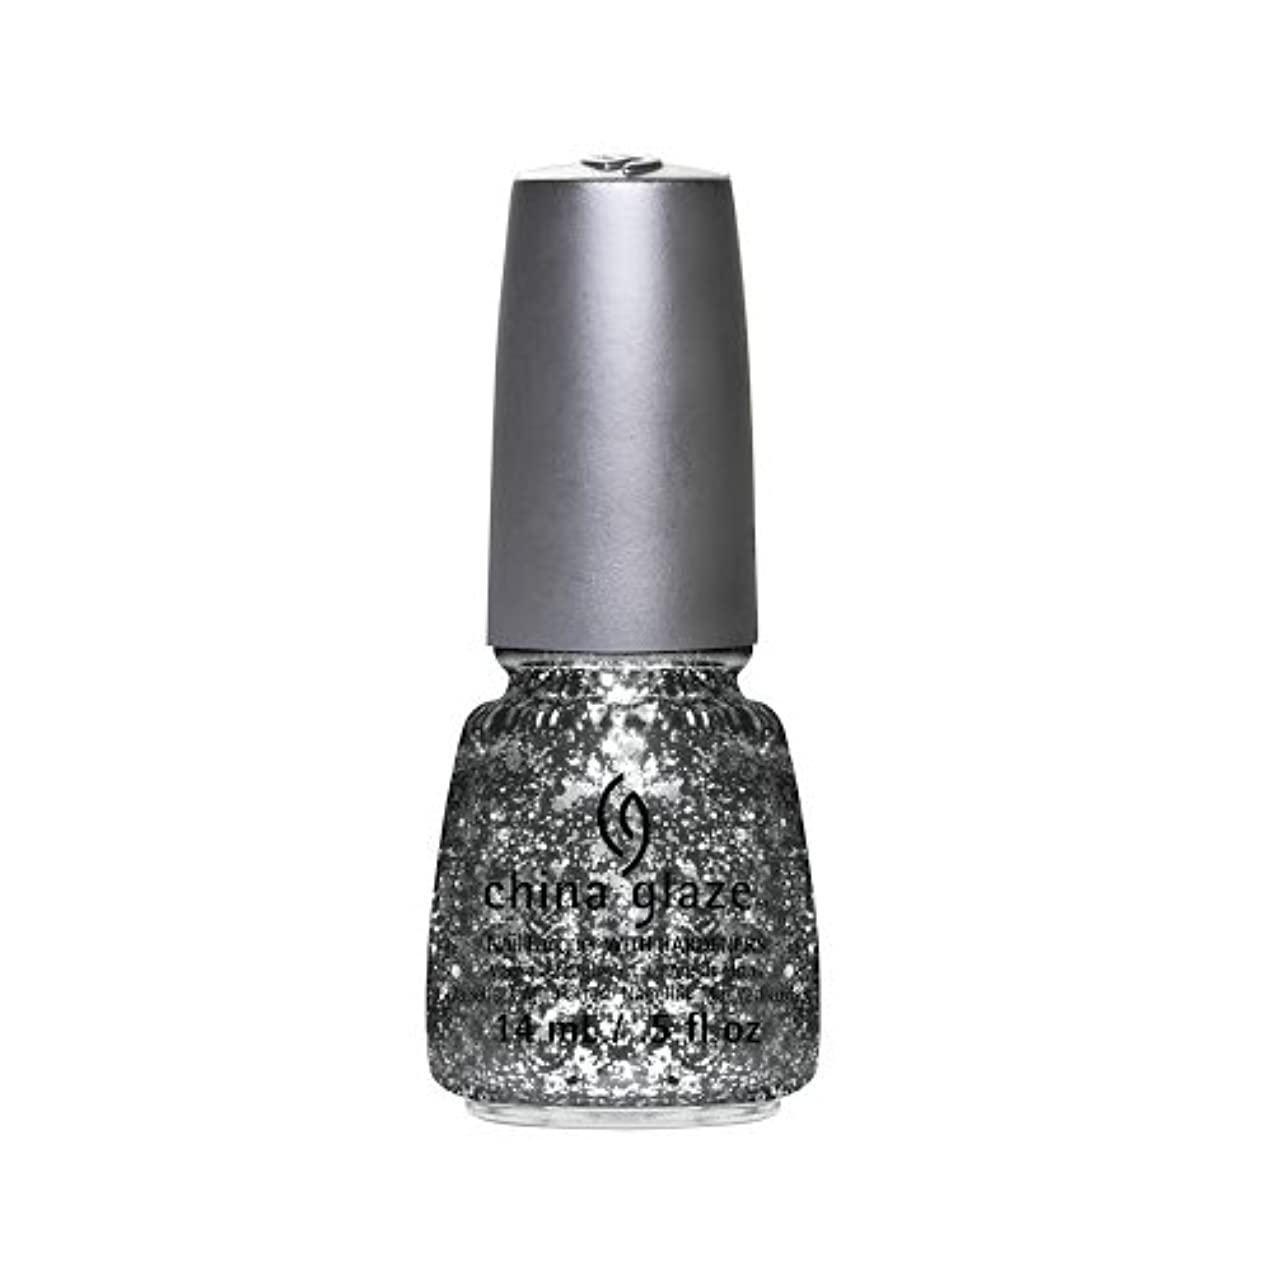 抜粋セットアップ賢い(3 Pack) CHINA GLAZE Nail Lacquer - Glitz Bitz ?n Pieces Collection - Gltz'n Pieces (並行輸入品)